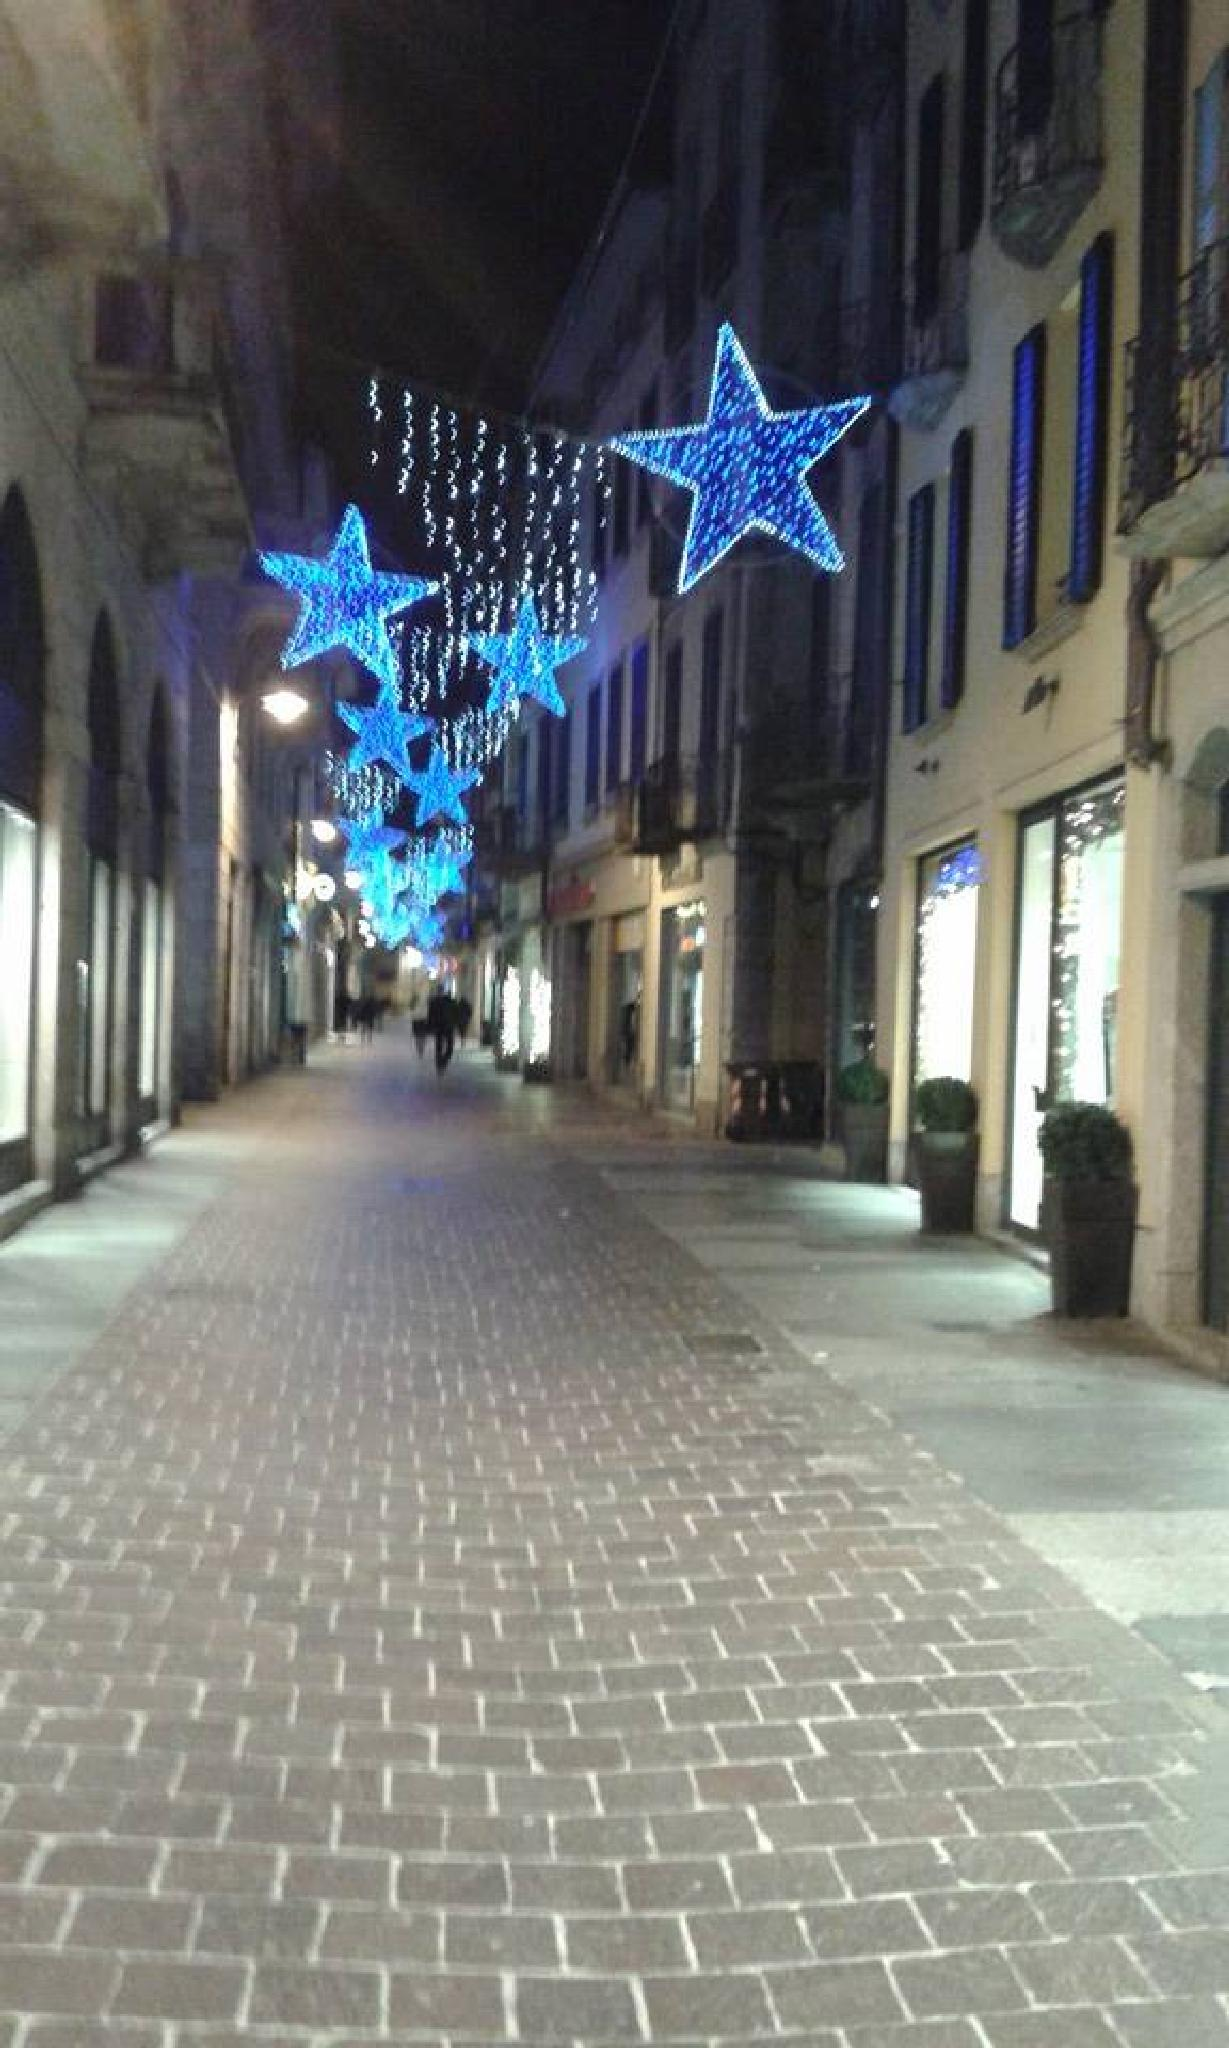 the silence after Christmas shopping by olori.fiorella